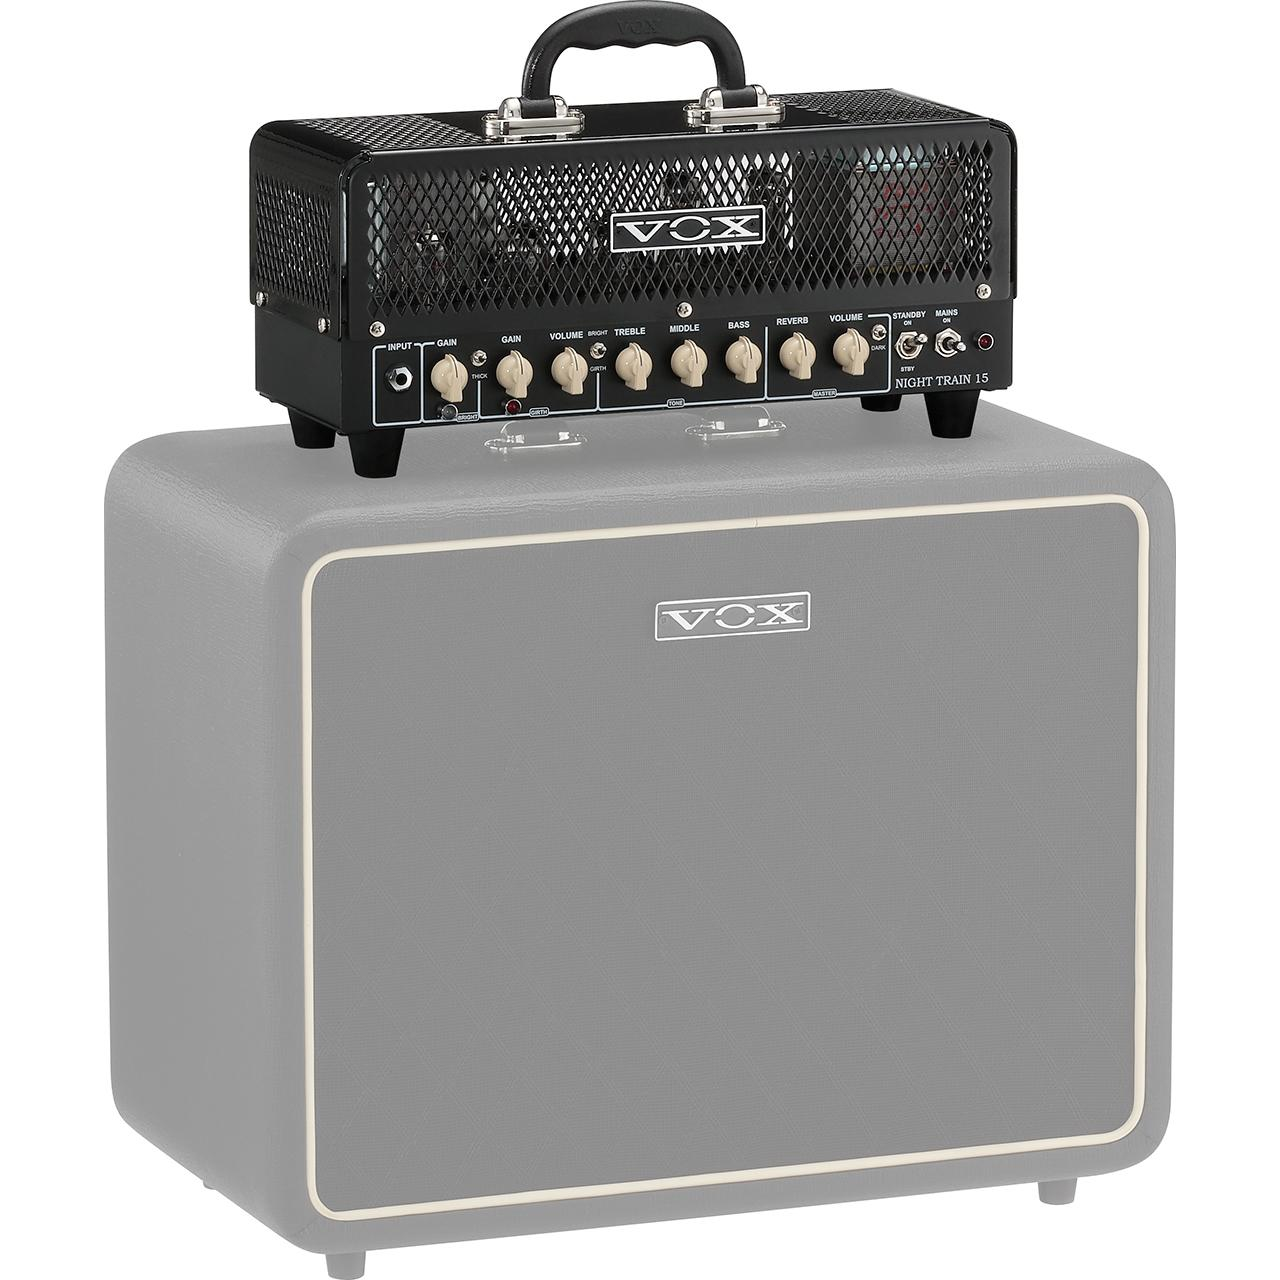 vox night train g2 nt15h g2 guitar amplifiers guitar amp heads instrument amplifiers. Black Bedroom Furniture Sets. Home Design Ideas